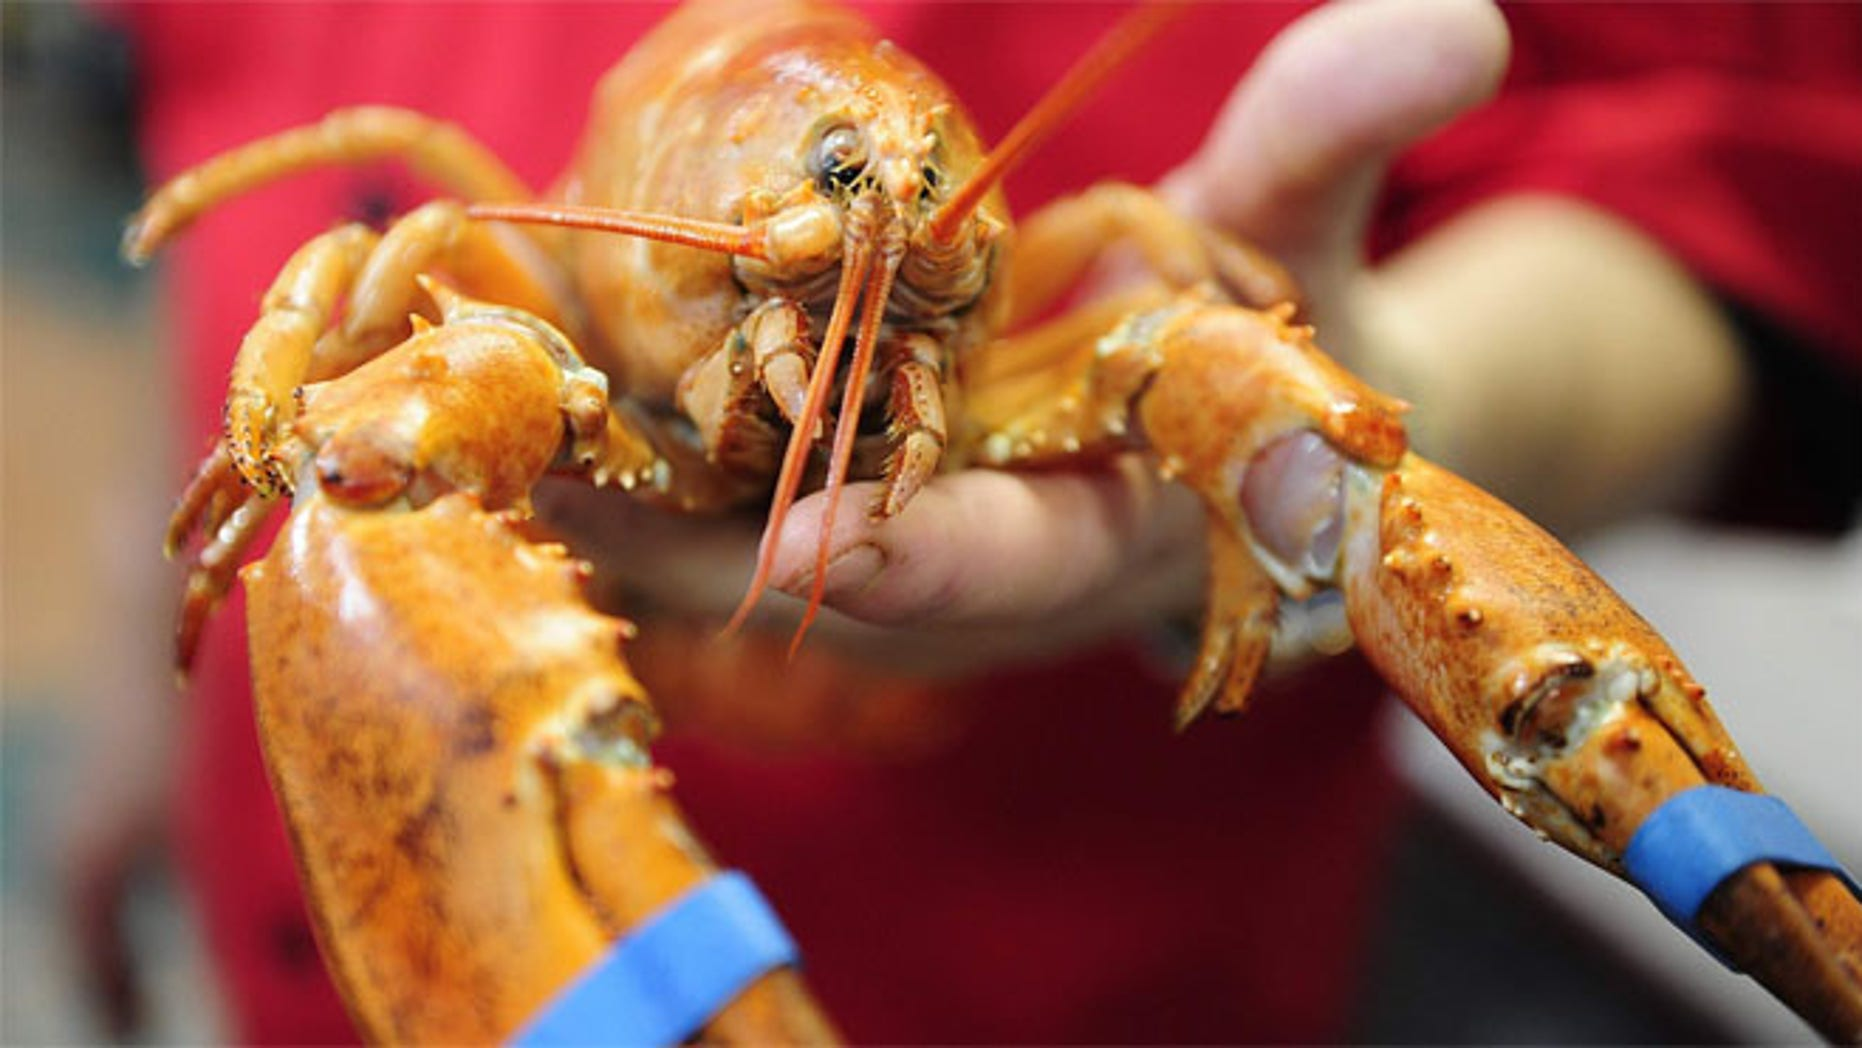 A rare live orange Maine lobster arrives at Bill's Steak and Seafood Restaurant in Naples. It has been named Martha and will be displayed at Bill Sarro's restaurant.